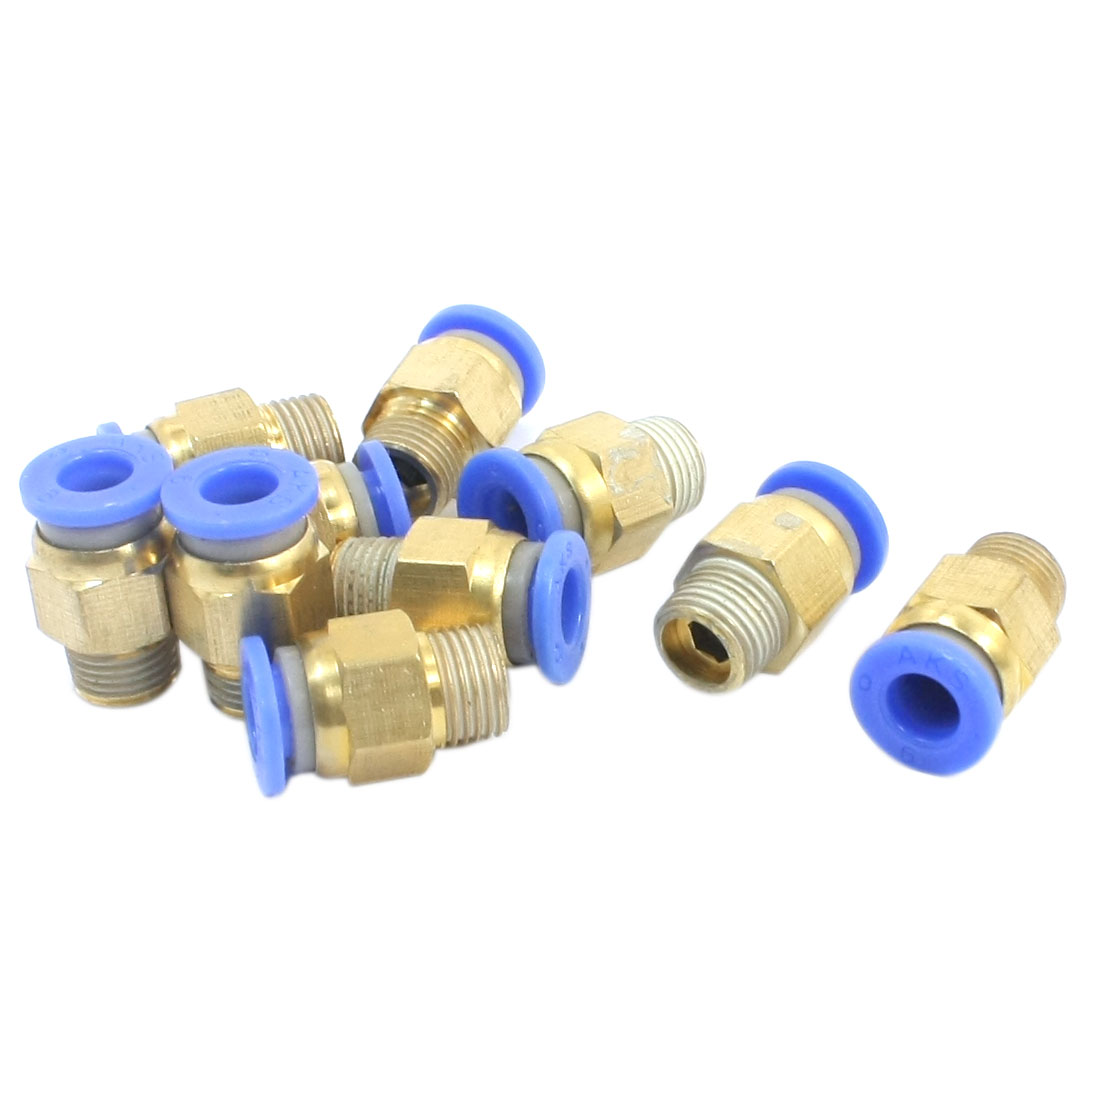 10 PCS 1/8 PT Male Thread 6mm Push in Tube Dia Pneumatic Air Quick Release Fitting Coupler Joint Connector Adapter